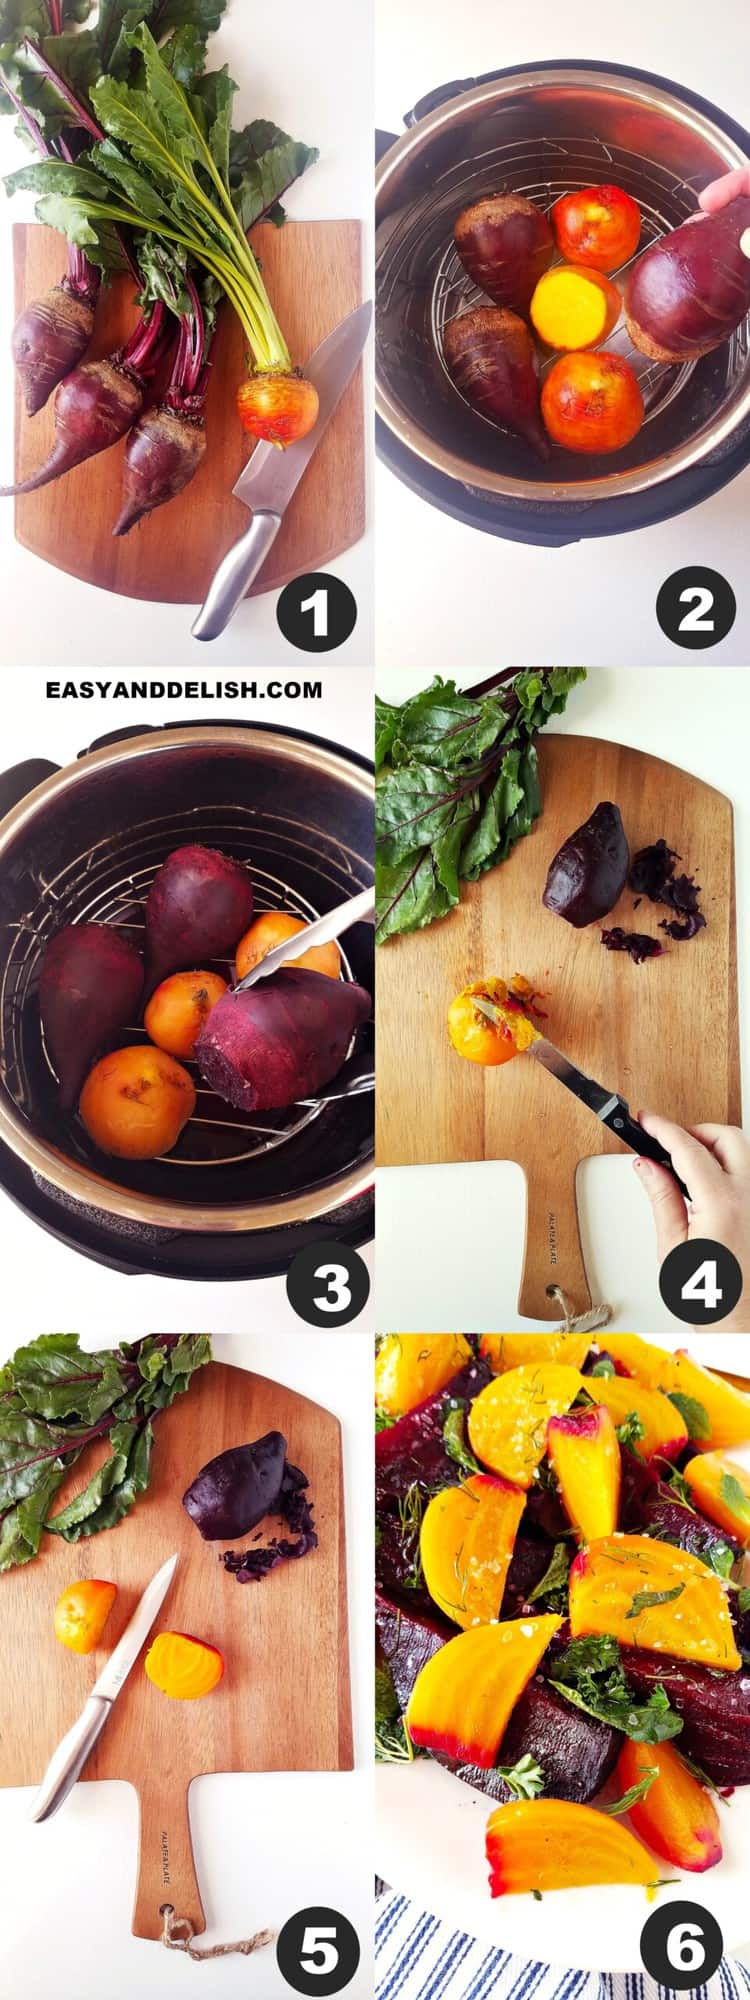 image collage shoing how to cook beets in the Instant Pot in 6 steps